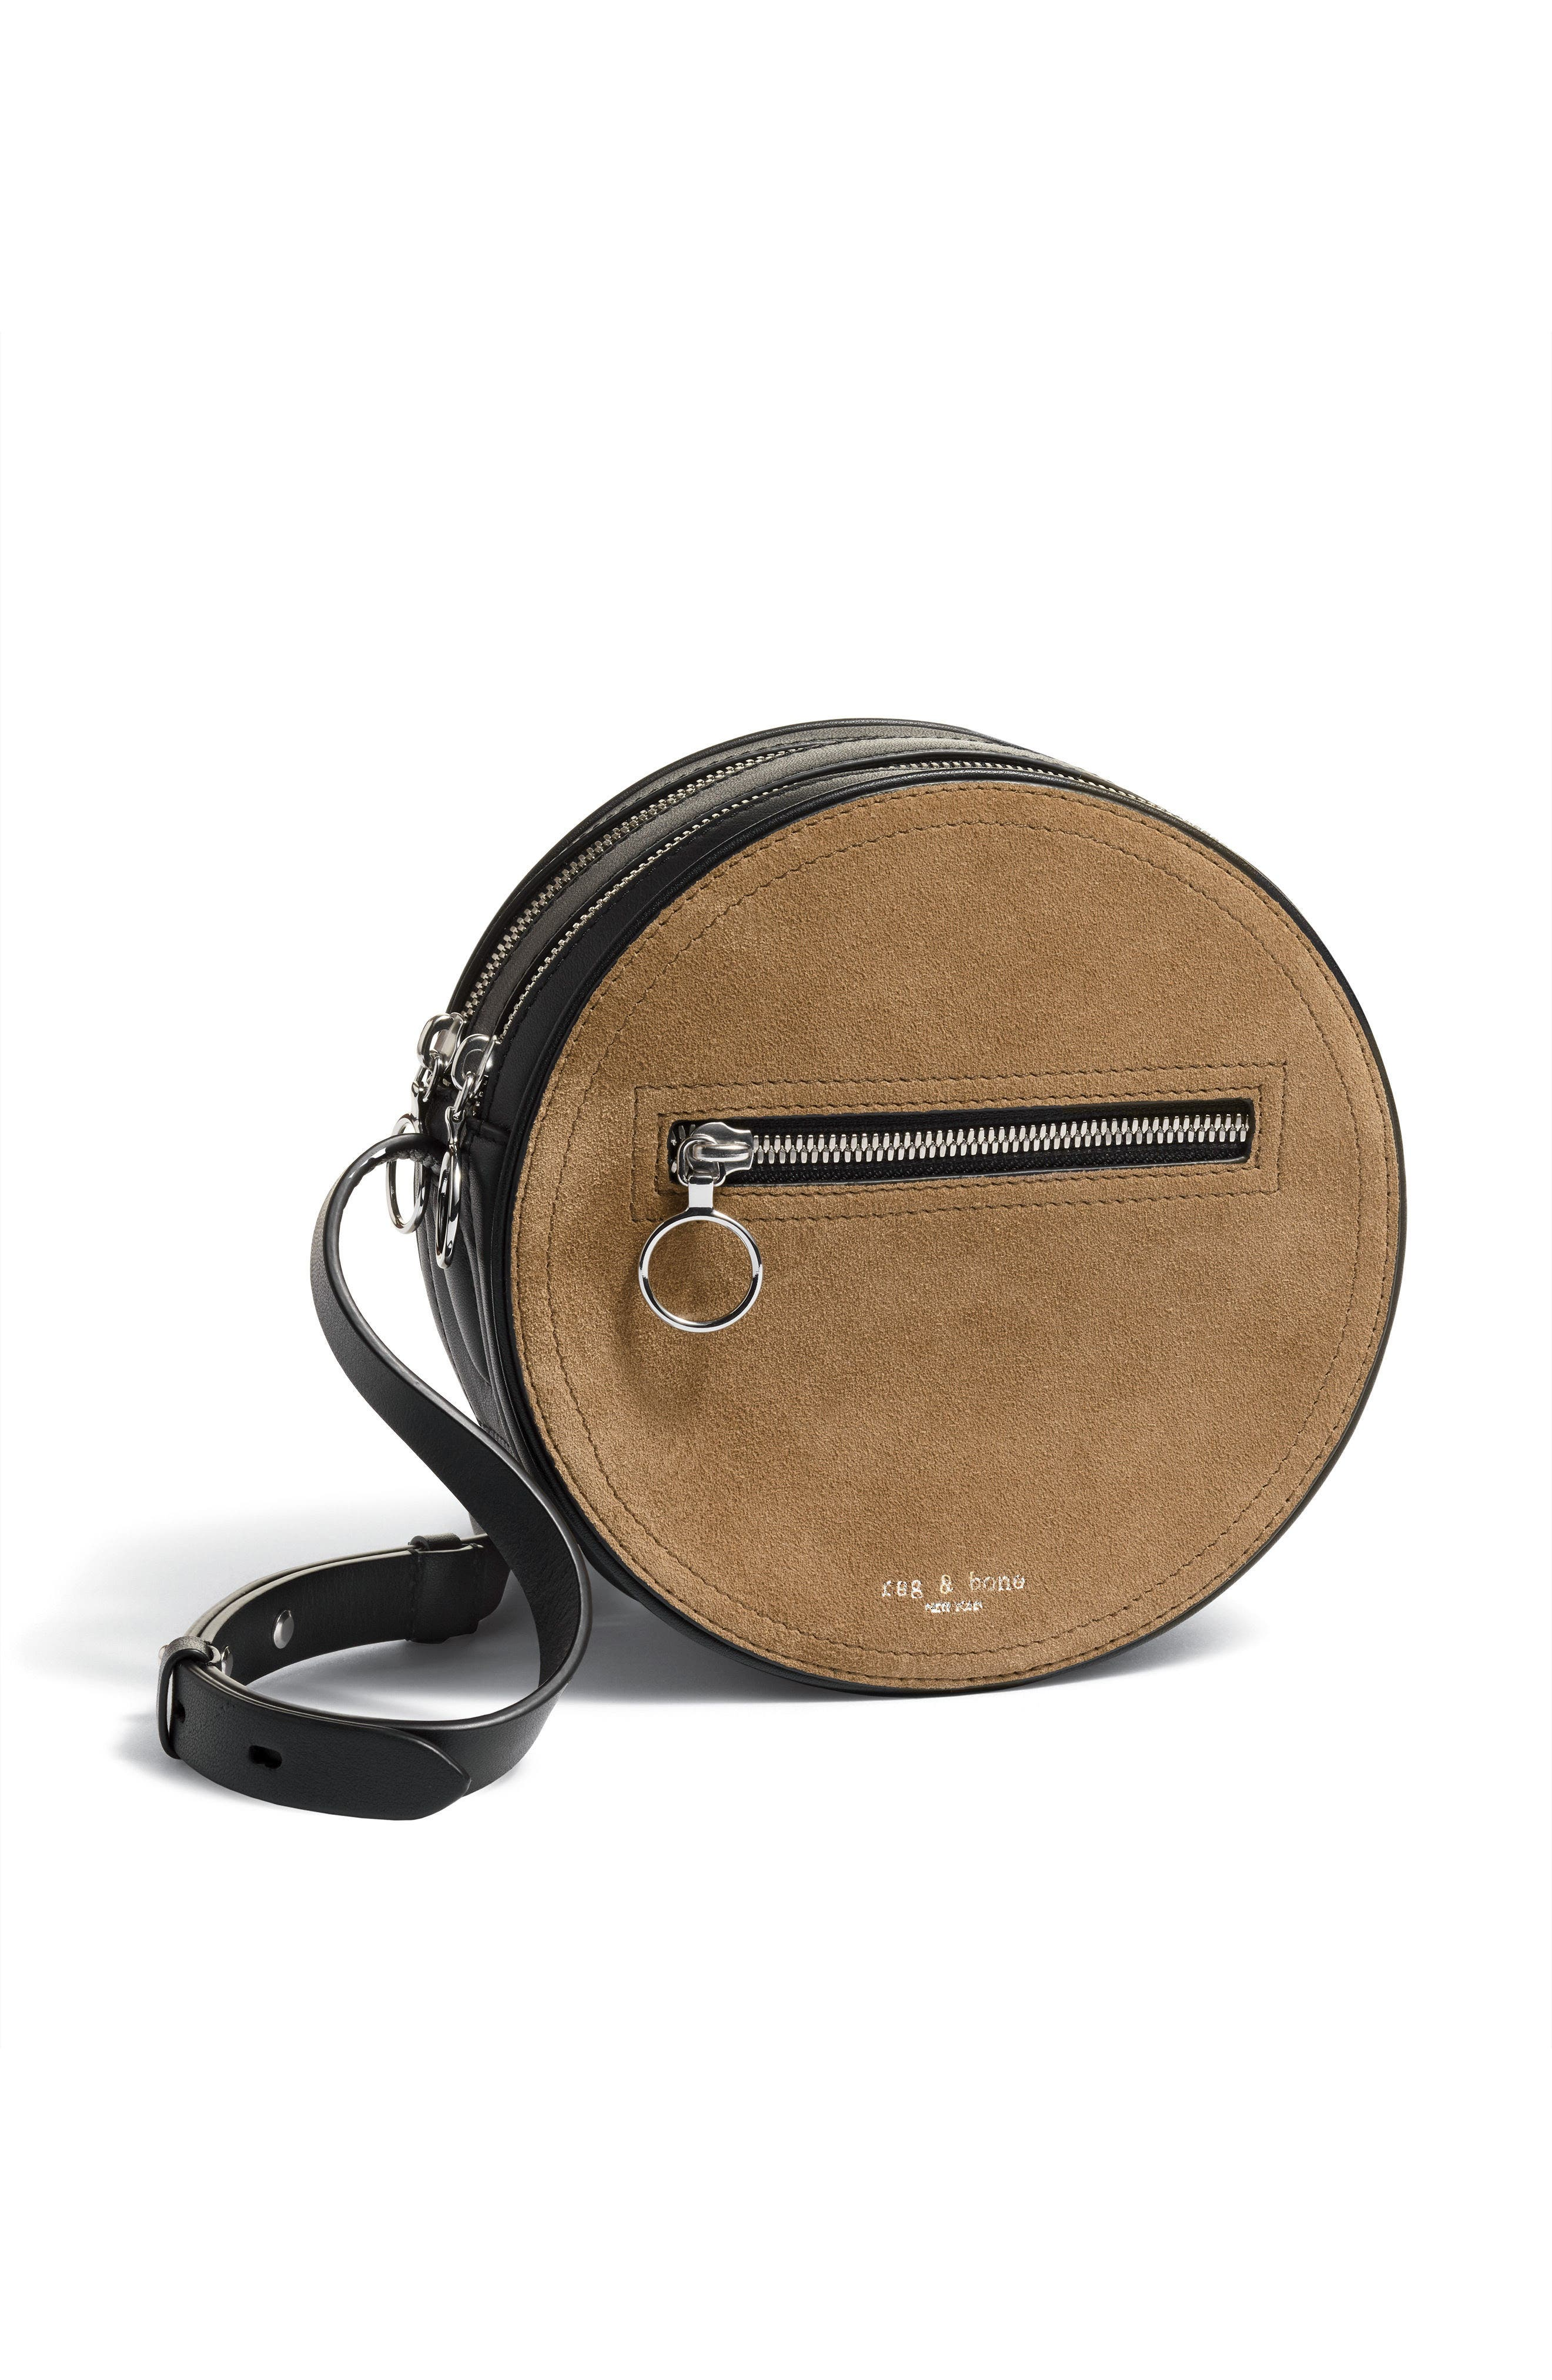 Suede & Leather Circle Crossbody Bag,                             Alternate thumbnail 8, color,                             200